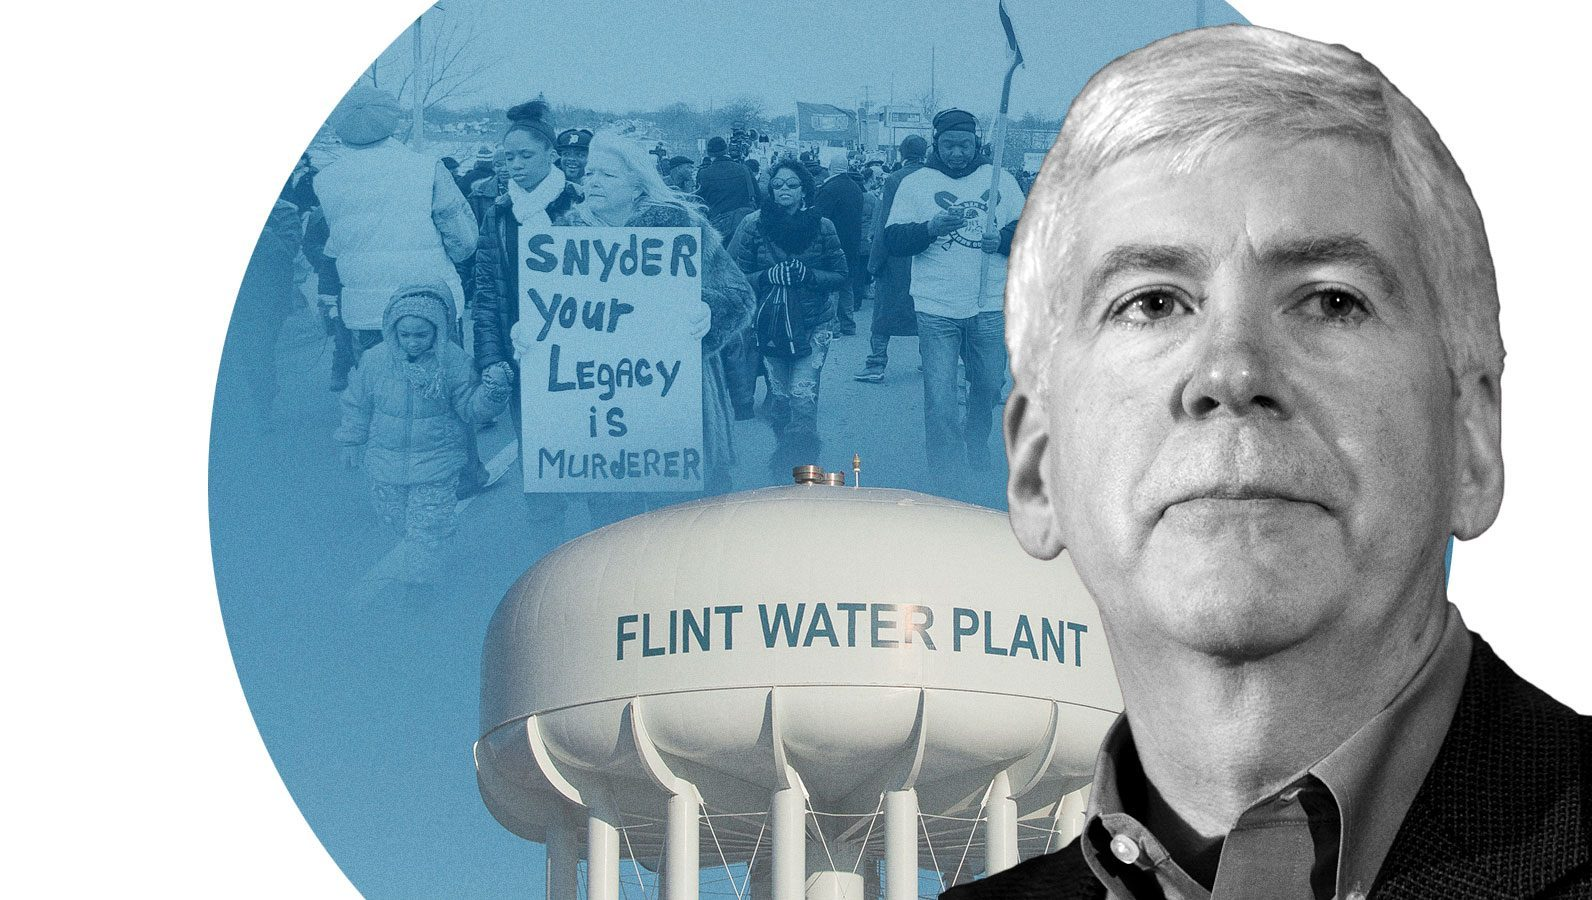 photo of 6 years after Flint water crisis, Michigan's ex-governor to face charges image